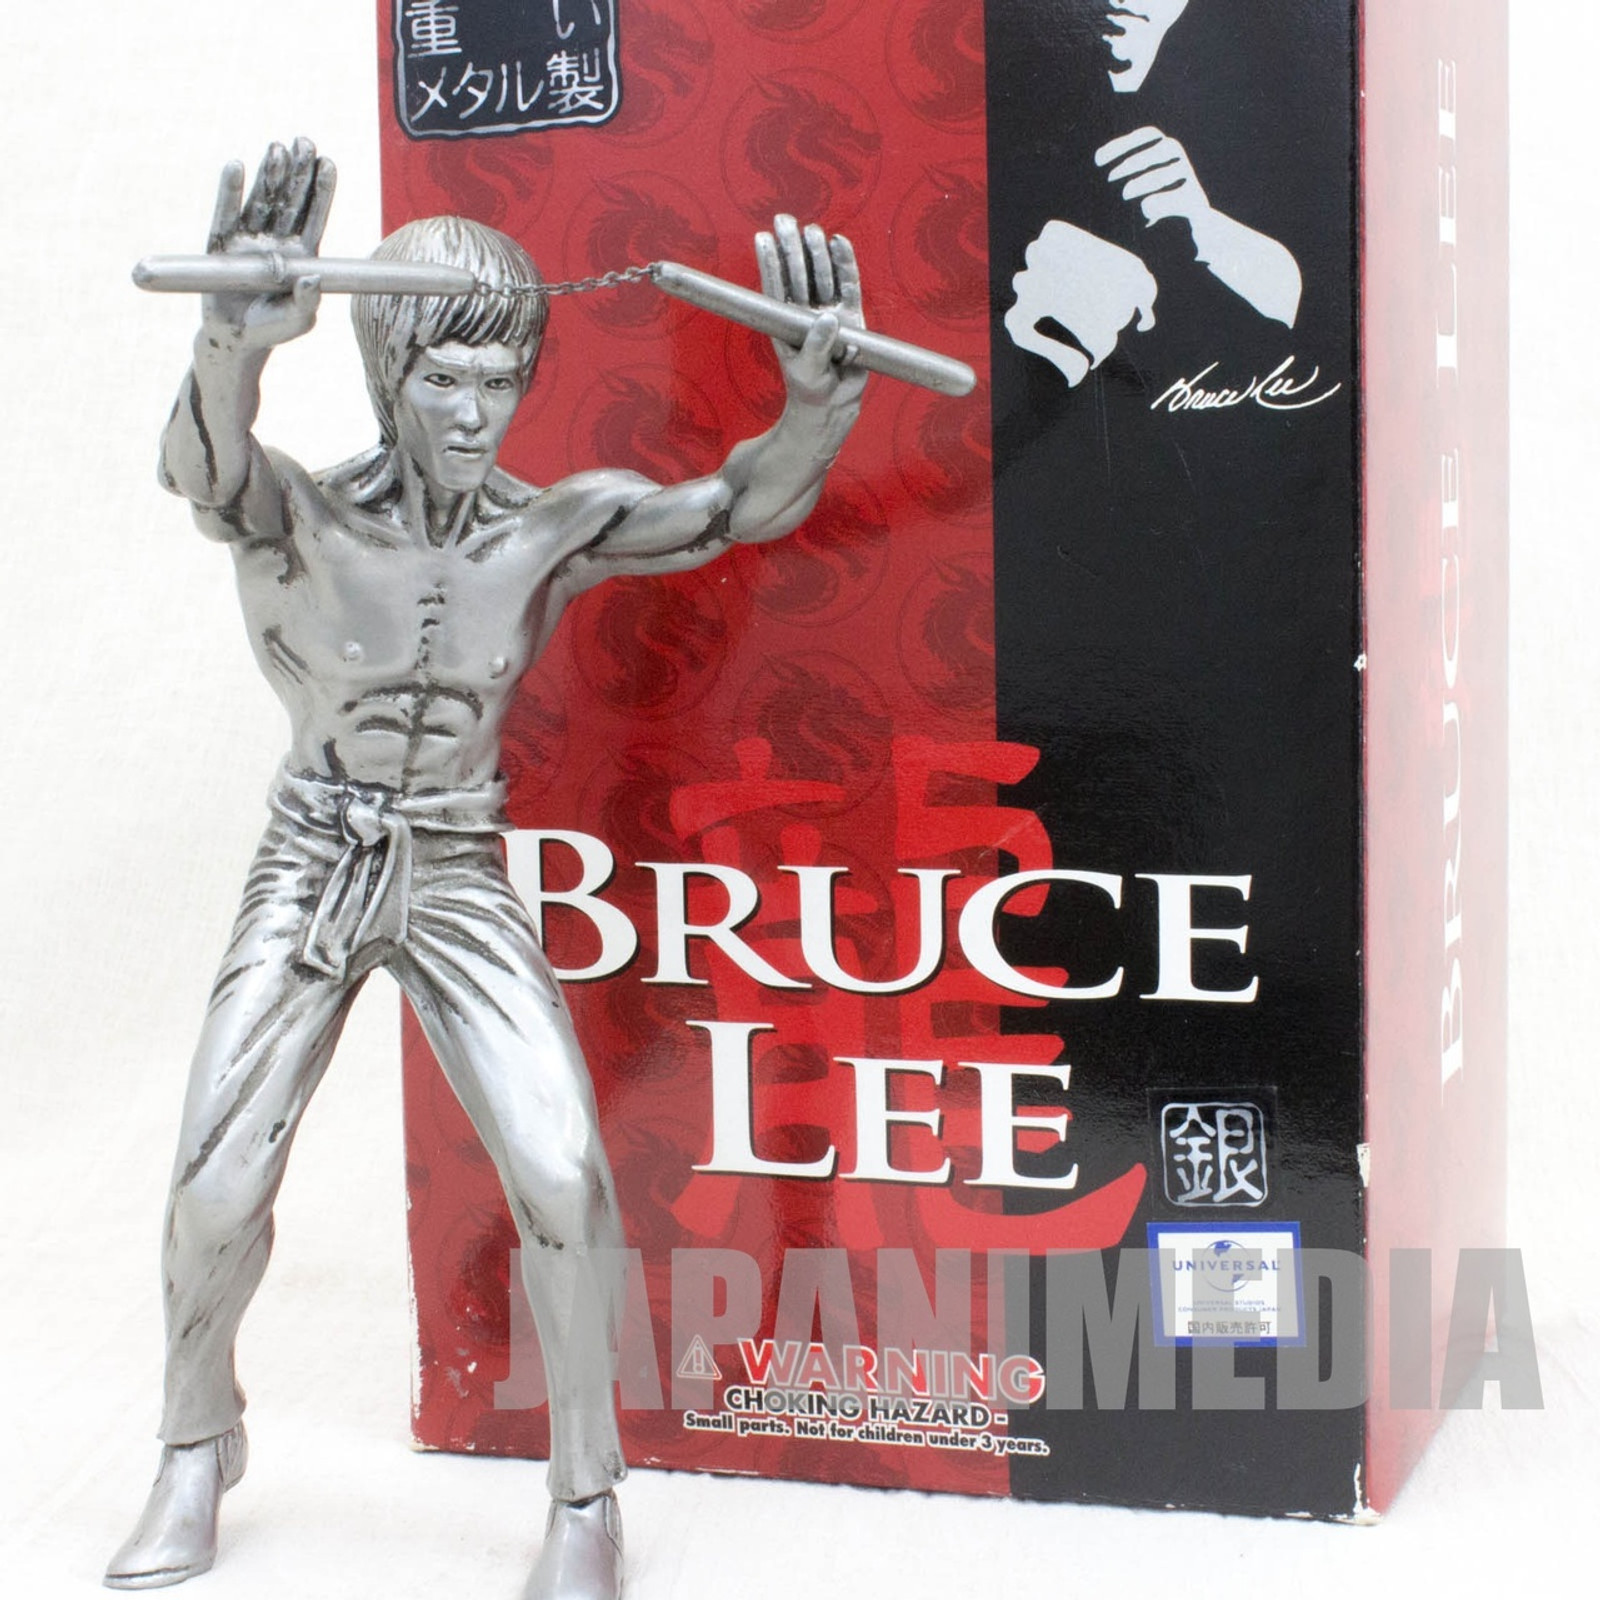 BRUCE LEE Metal Statue Figure Silver ver. Medicom Toy JAPAN KUNG FU MOVIE